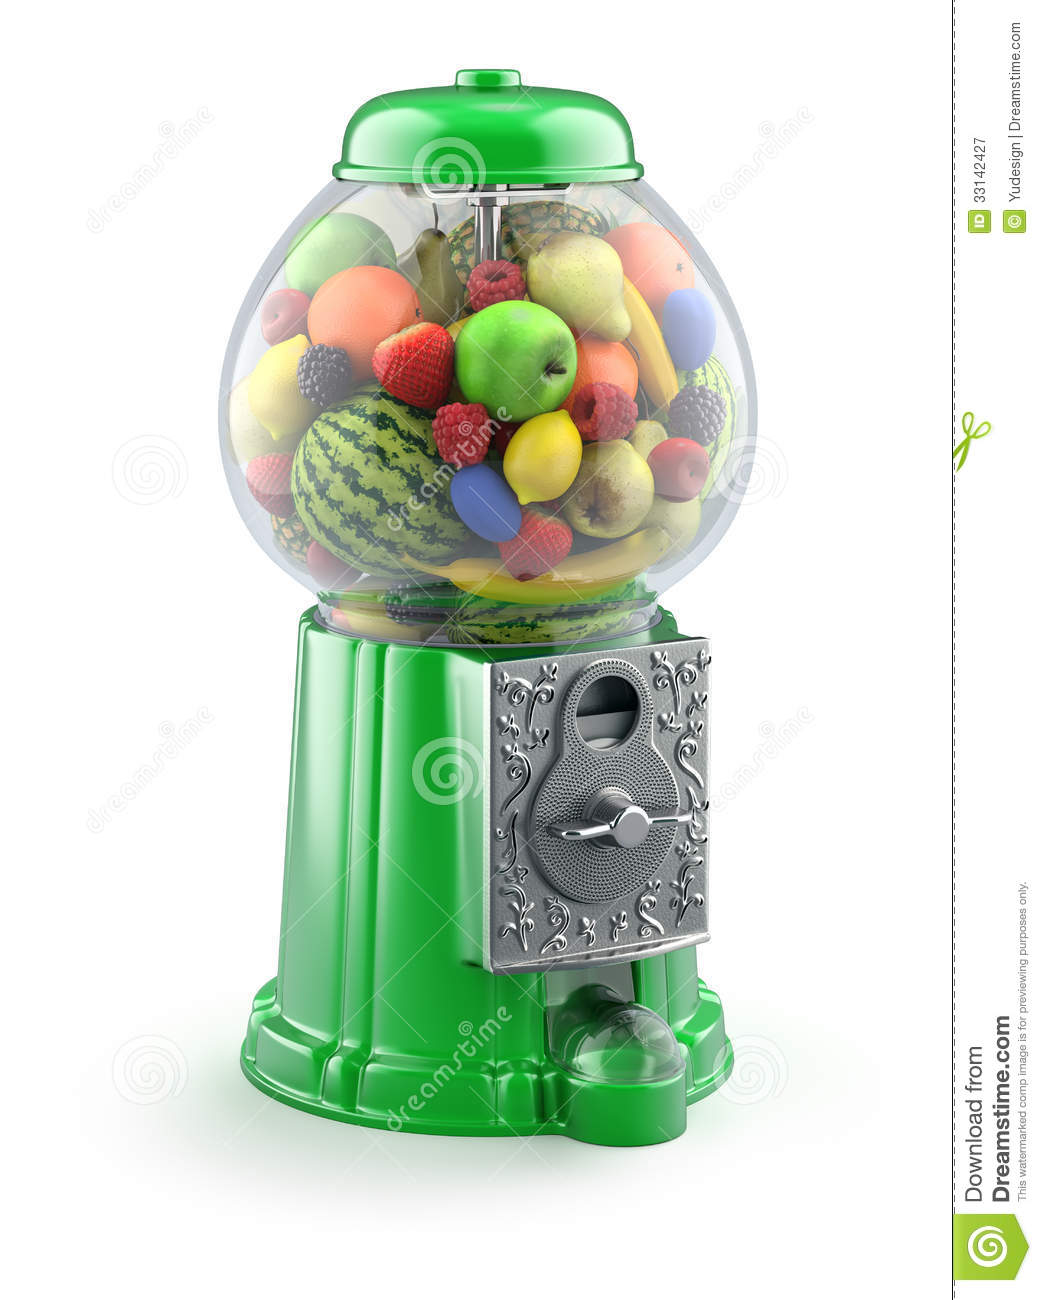 in the gumball machine